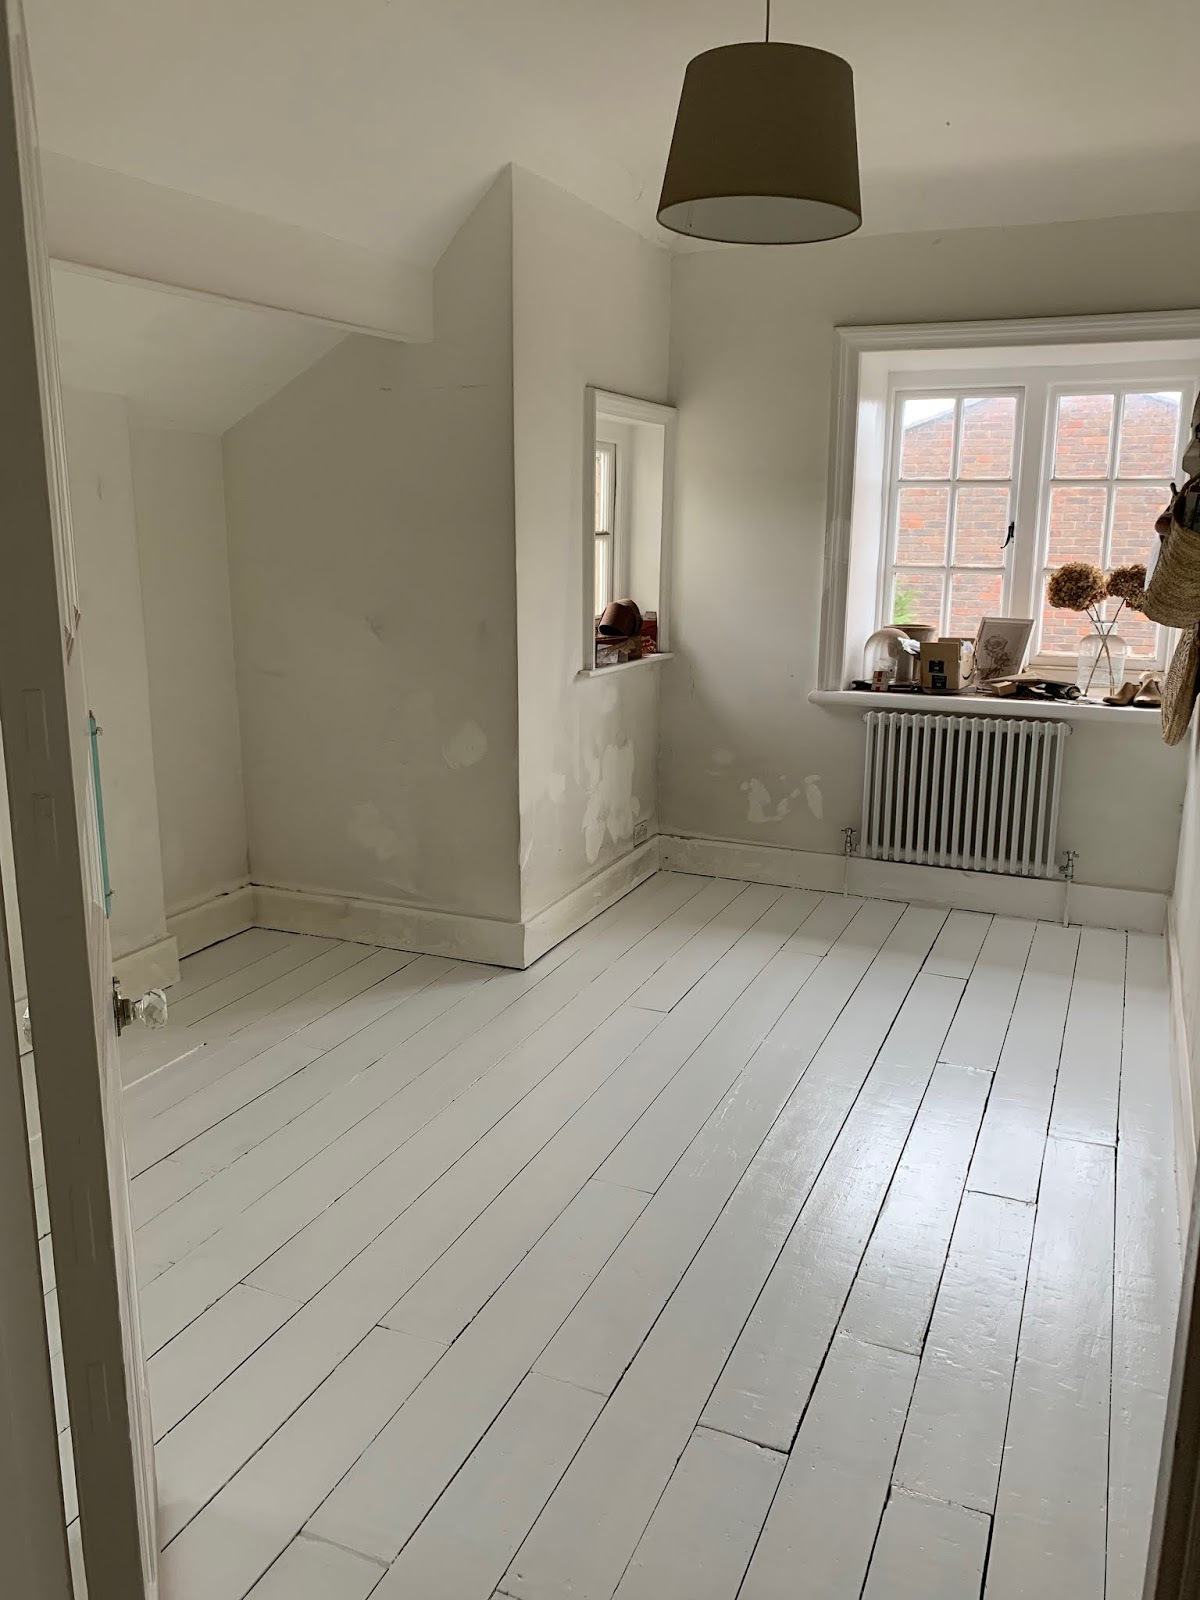 We Ve Been Busy Starting Our New Renovation Project Over The Past Of Weeks And It S A Super Exciting One Nursery For Baby Bee